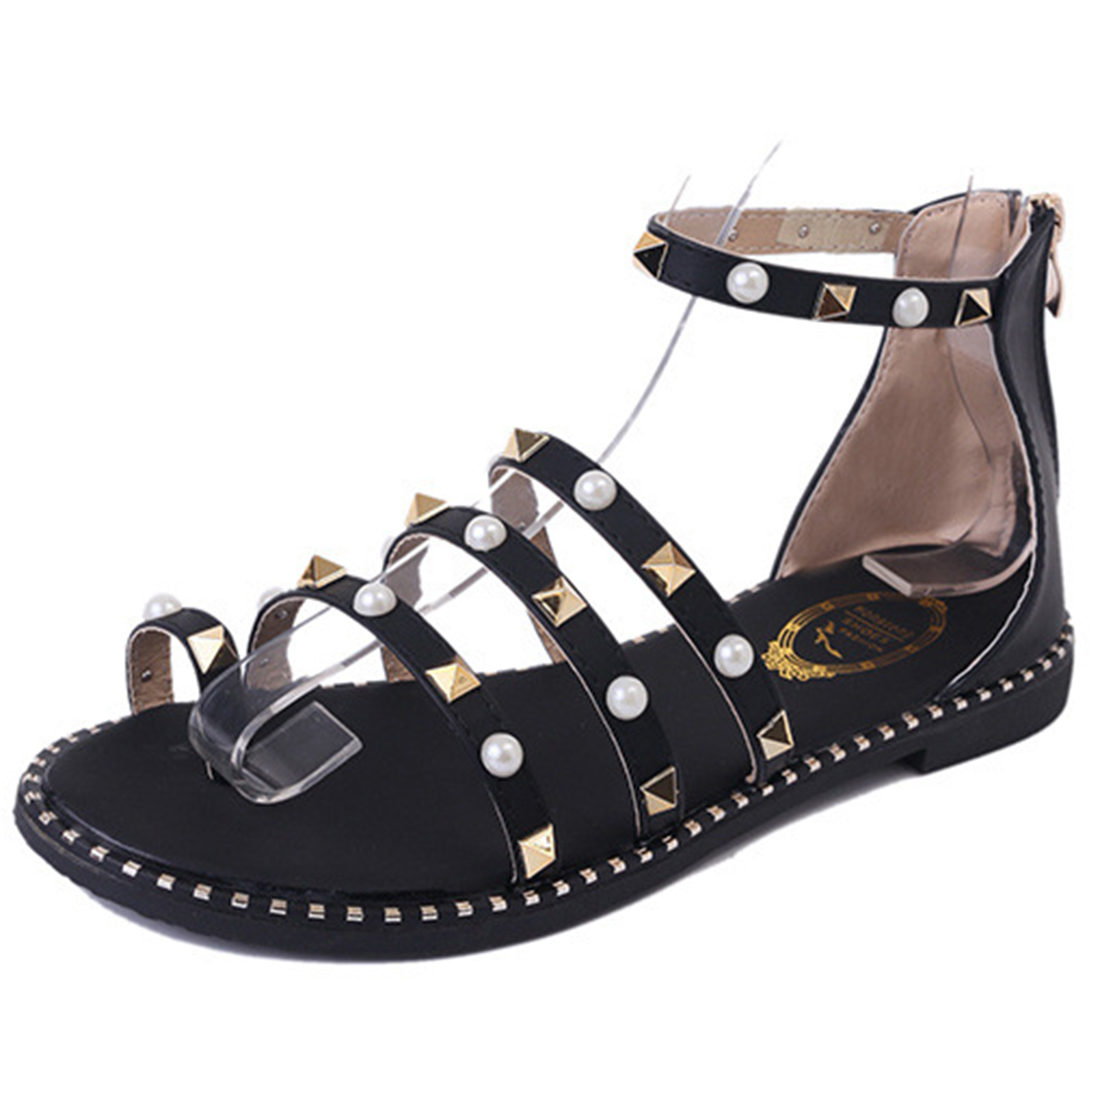 Women's sandals with zipper